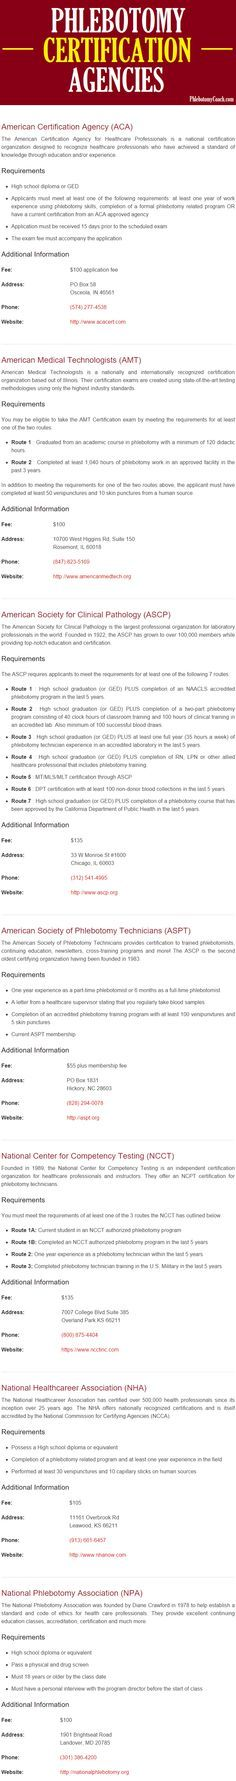 Best 25+ Phlebotomy certification ideas on Pinterest Phlebotomy - phlebotomy sample resume